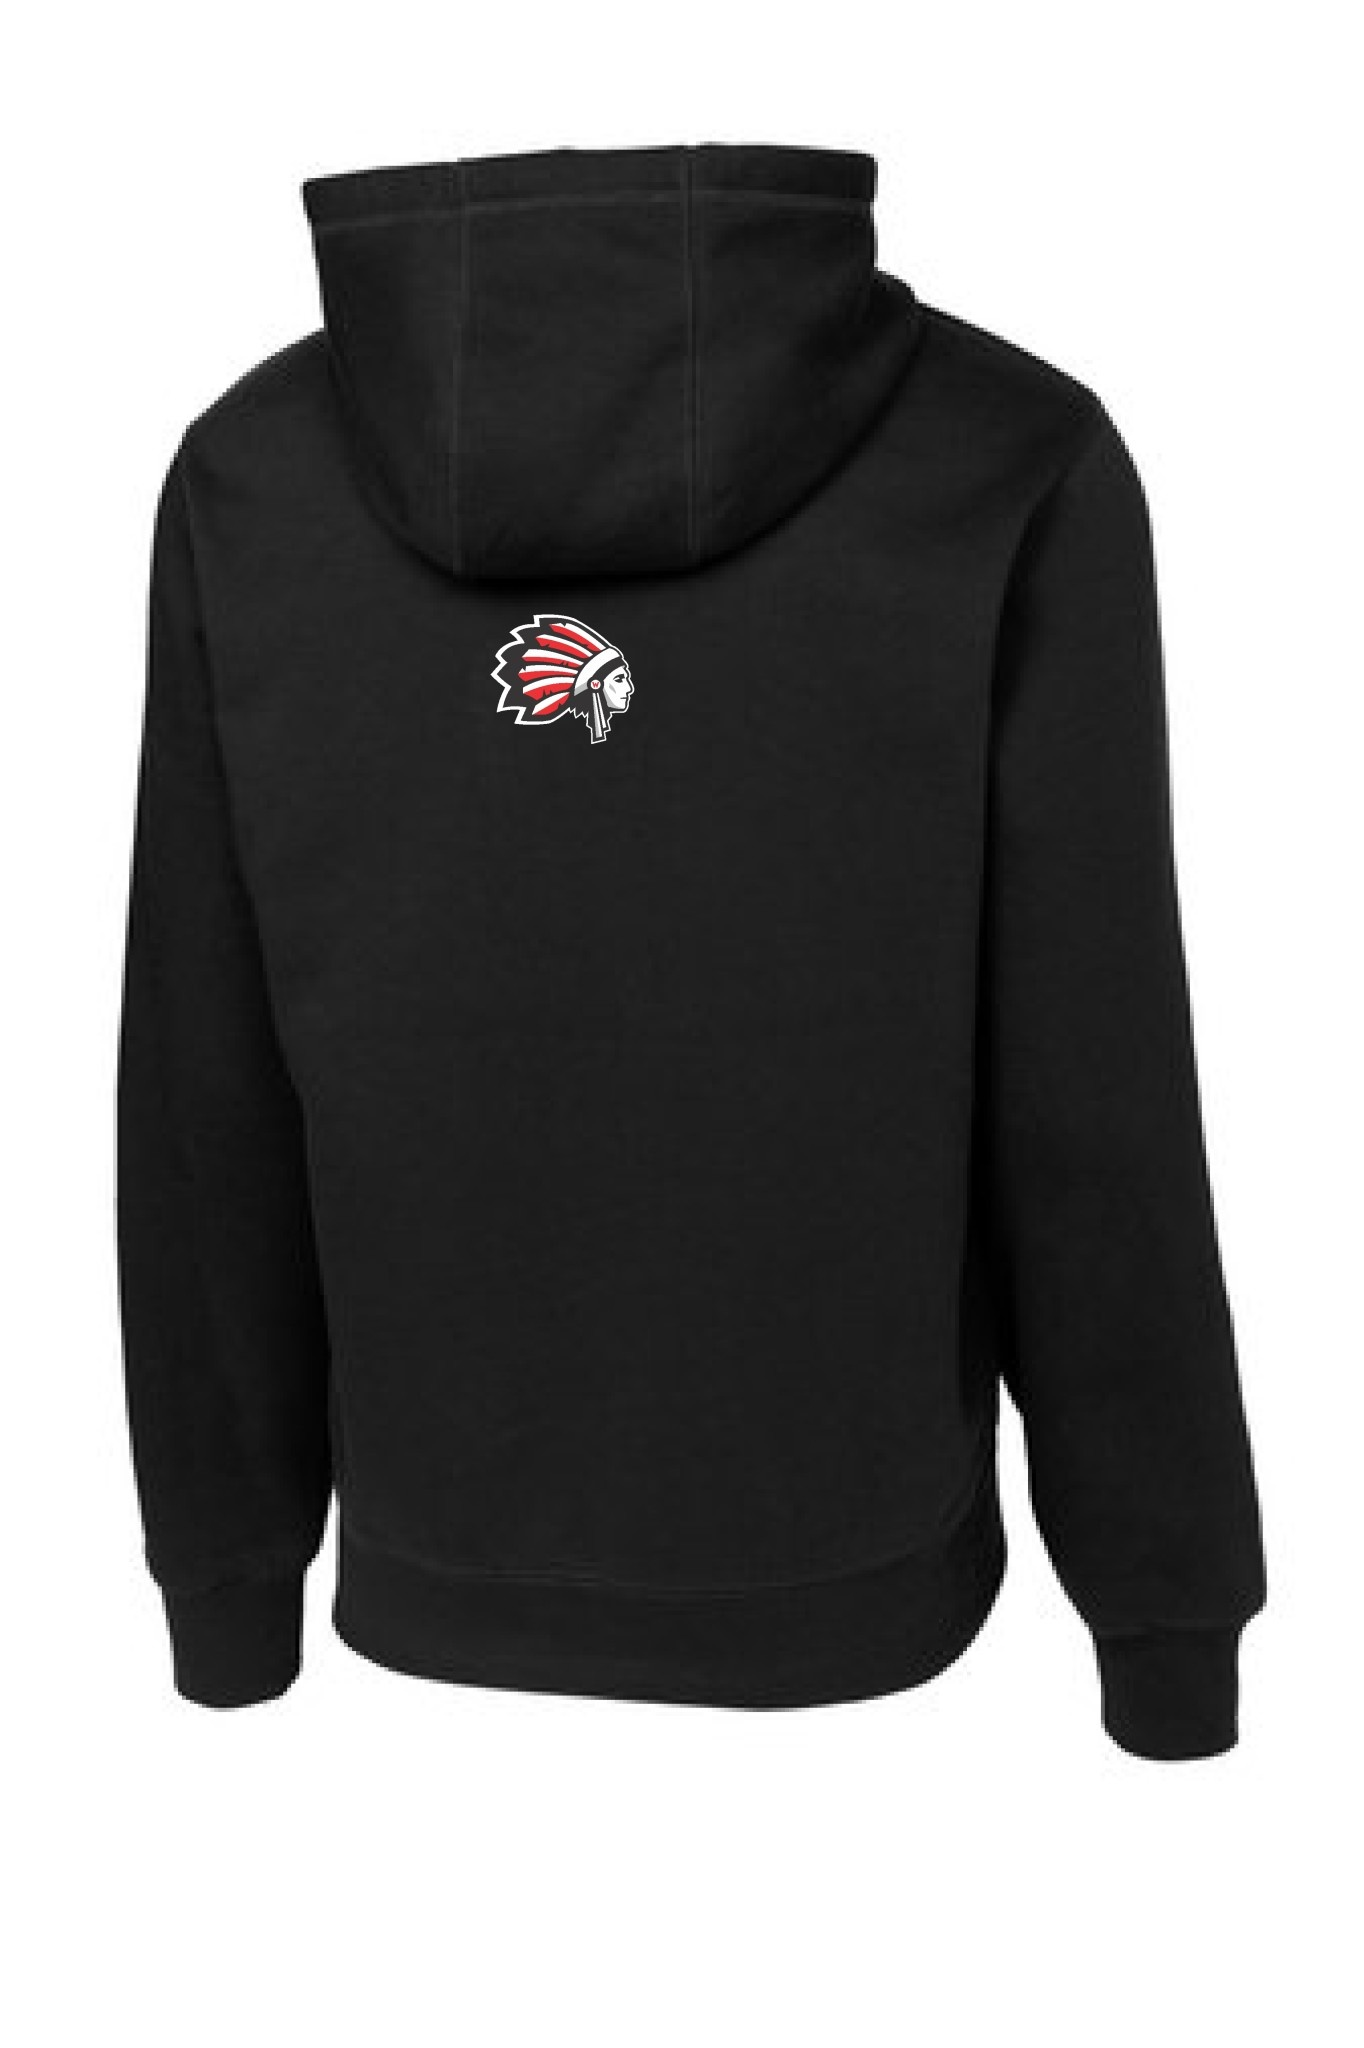 W398-ST254 Hooded Sweatshirt